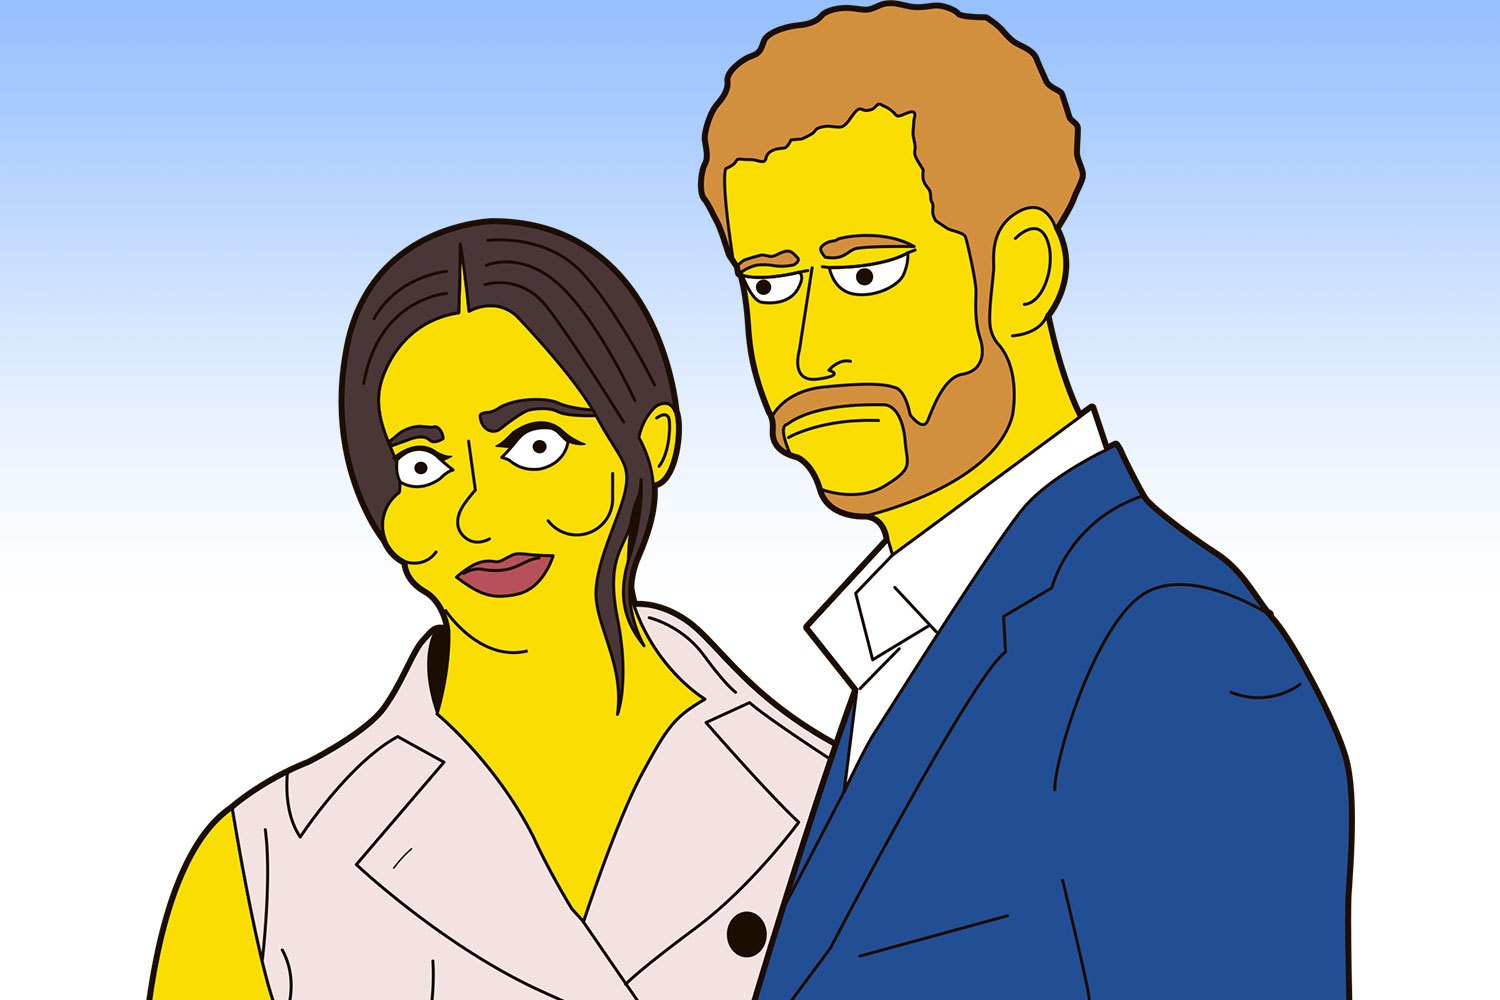 The Sussexes (drawn in The Simpsons cartoon style) have not been officially approached about doing a cameo on the show